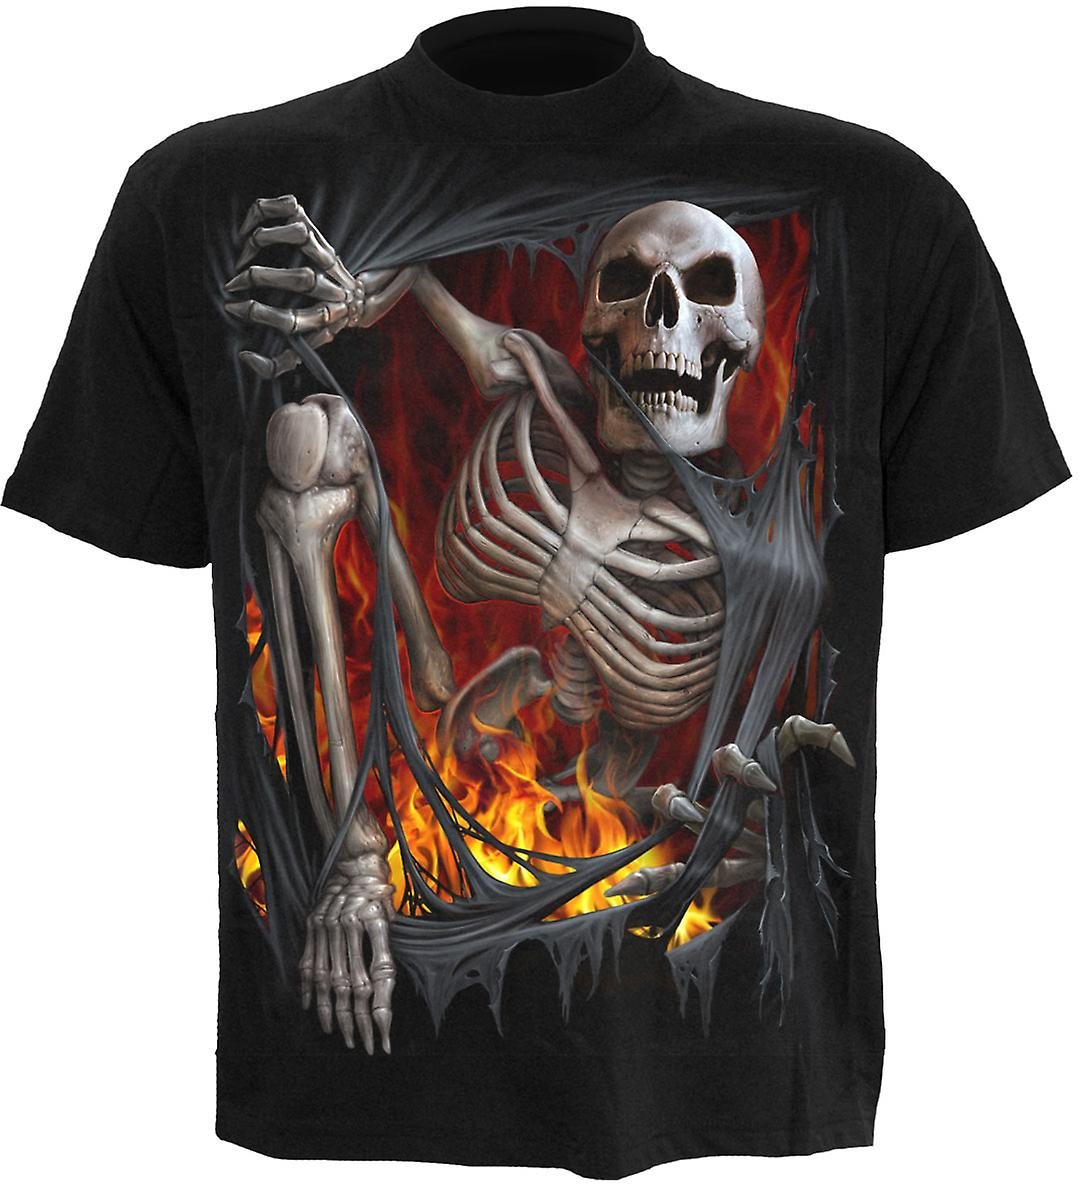 Spiral Direct Gothic DEATH RE-RIPPED - T-Shirt Black|Skeleton|UnDead|Rips|Skulls